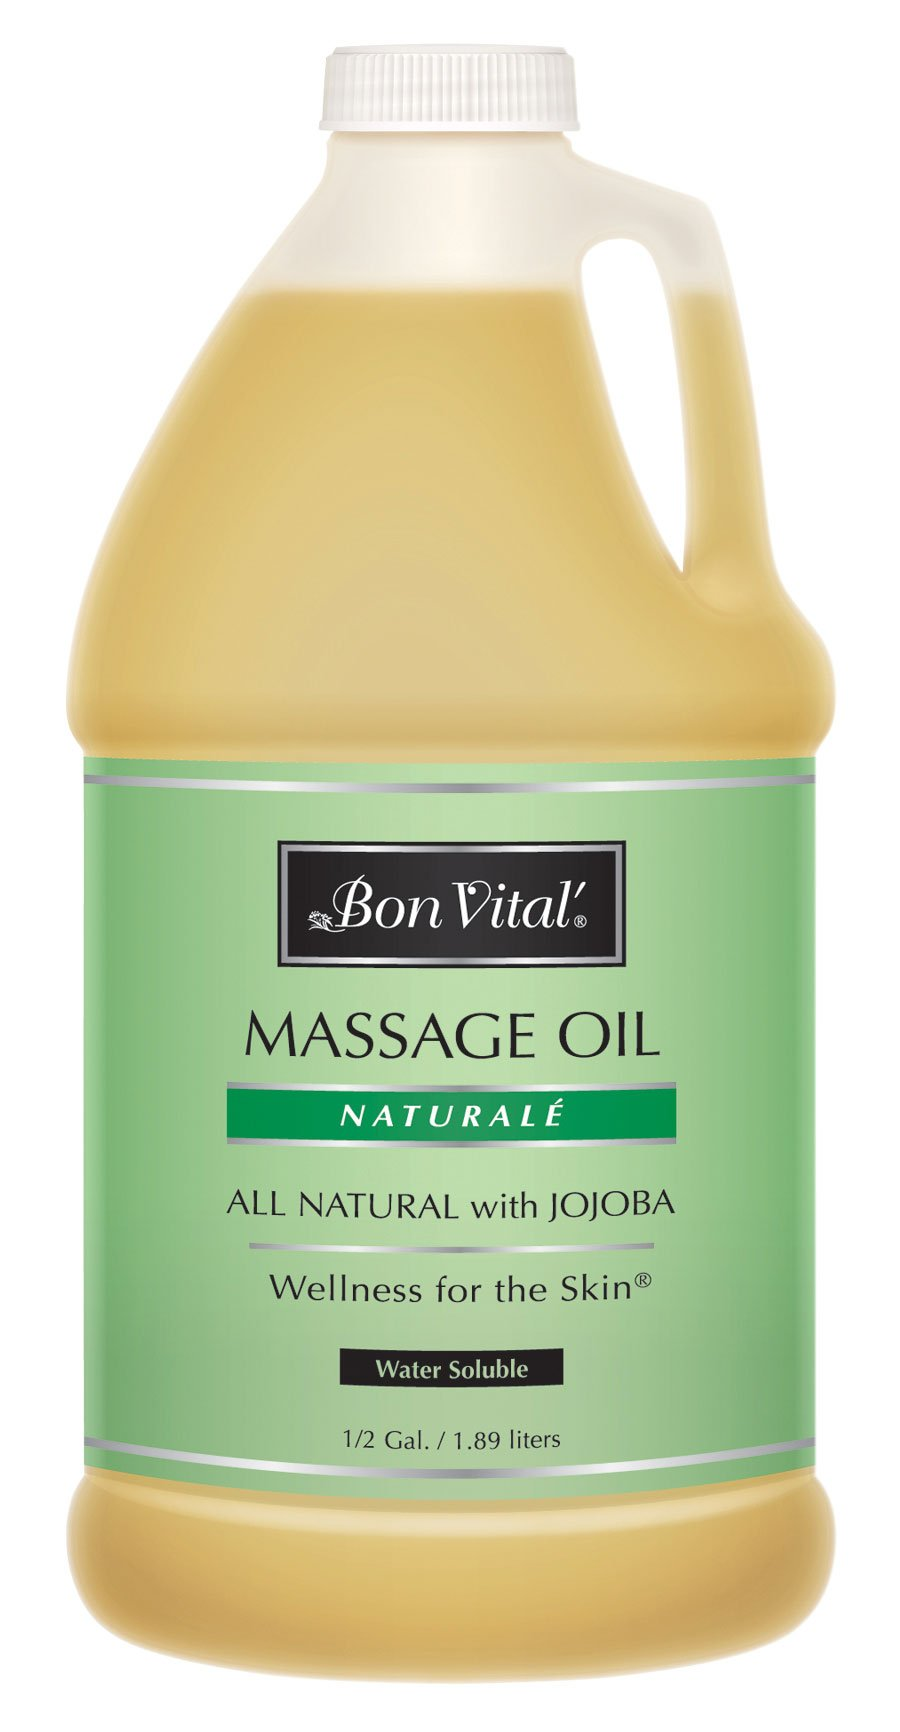 Bon Vital Naturale Massage Oil Made with Natural Ingredients for an Earth-Friendly & Relaxing Massage, Revives & Rehydrates Dry Skin Naturally, with Green Tea Extract for Added Skin Benefits, 1/2 Gal